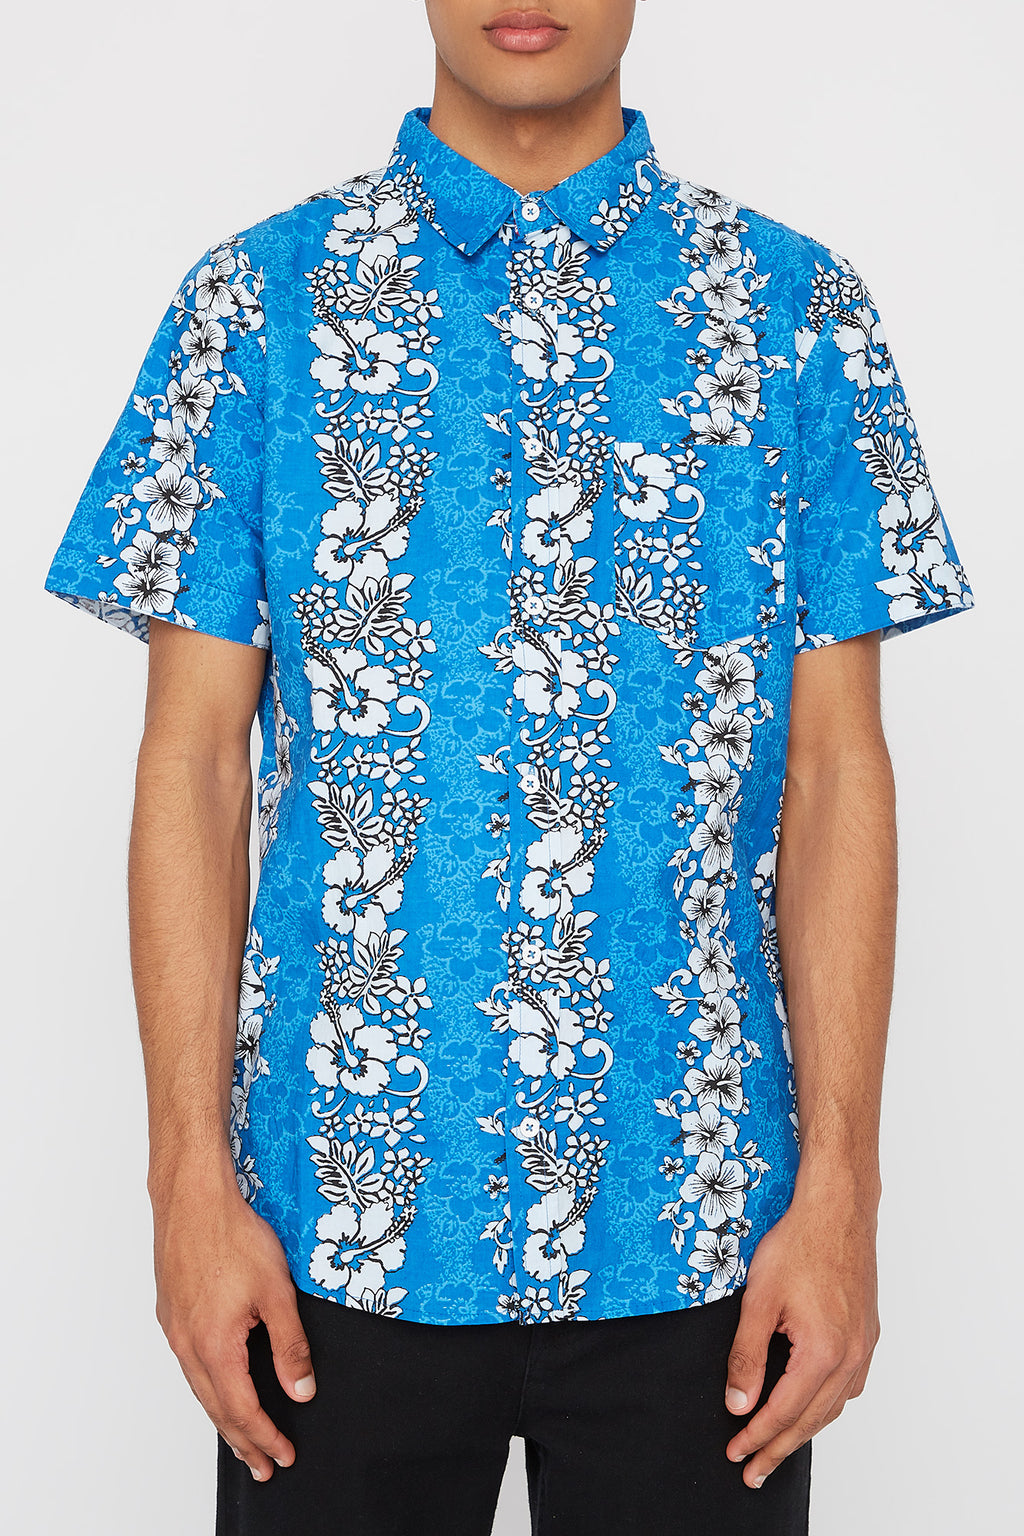 West49 Mens Hibiscus Button Up Shirt